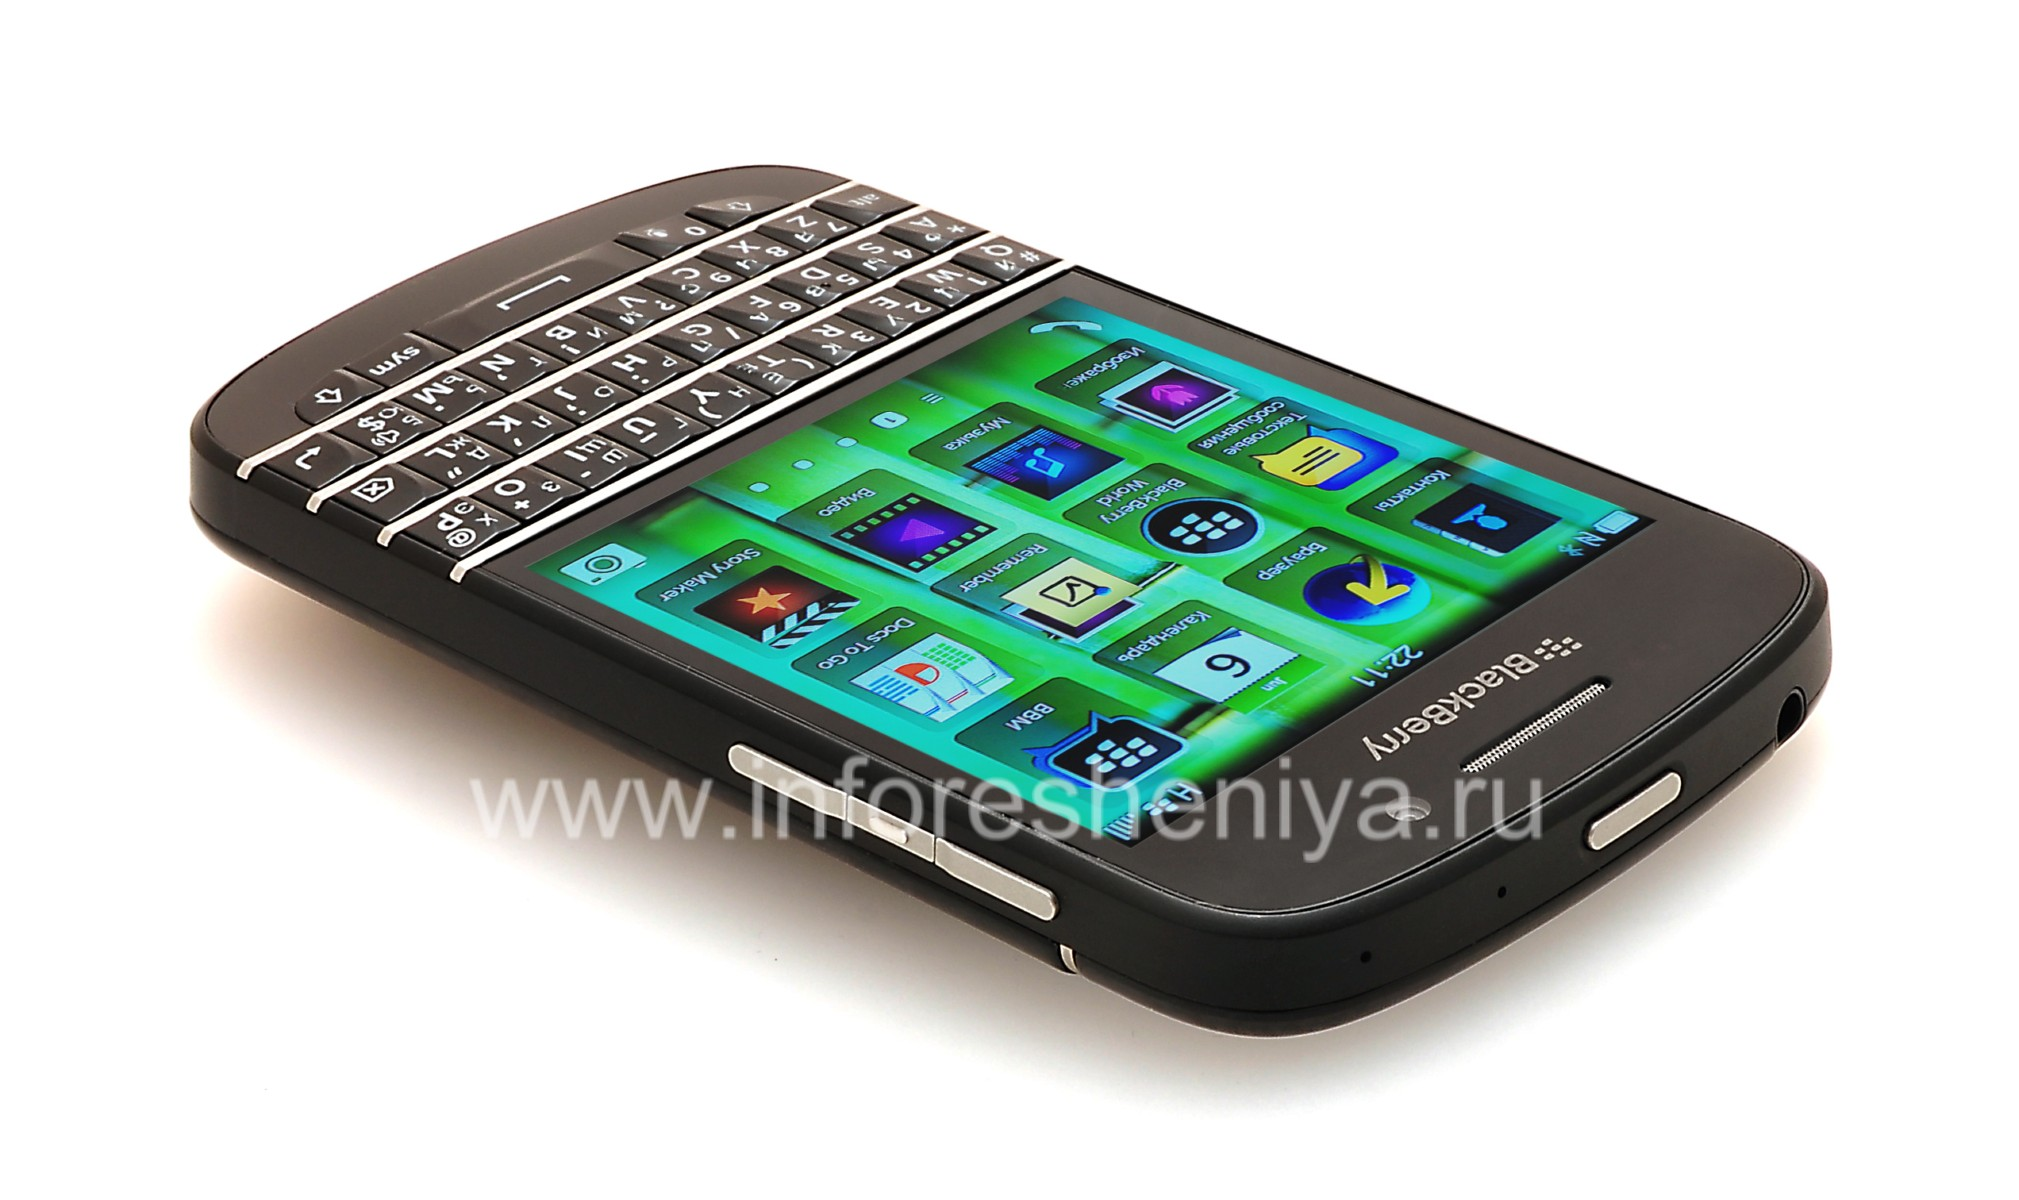 Buy Smartphone Blackberry Q10 Black Everything For